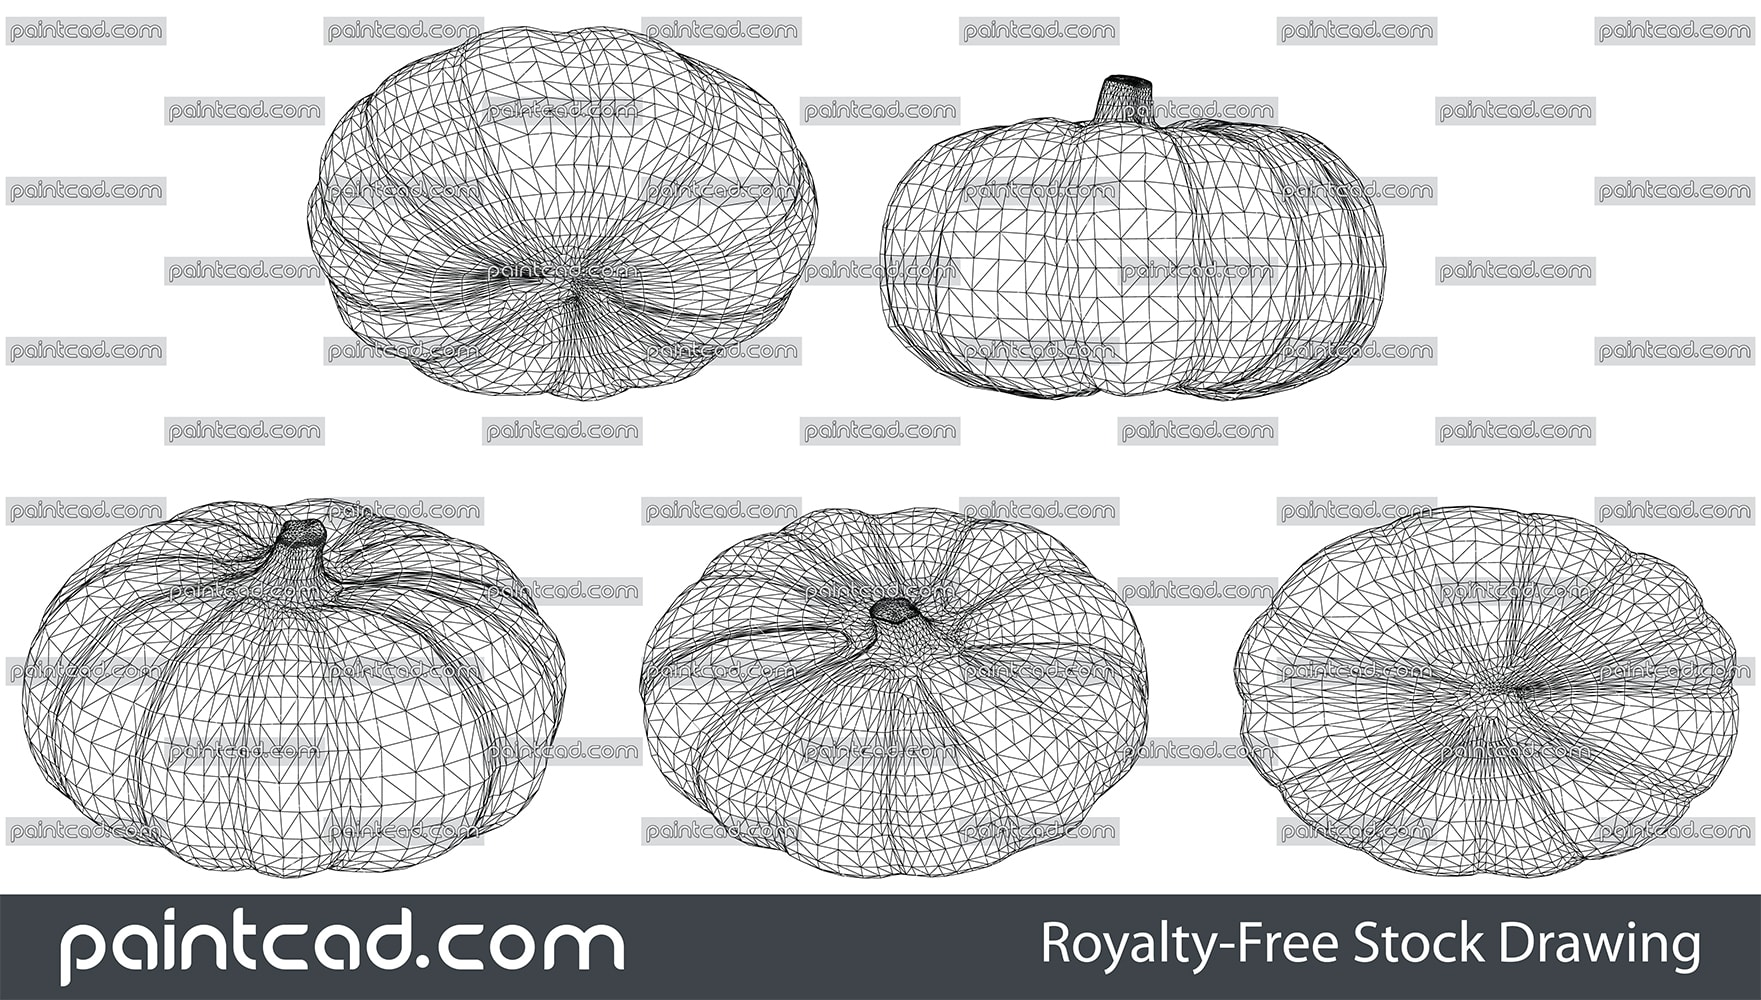 Wireframe design of pumpkin with handle over white background - vector illustration